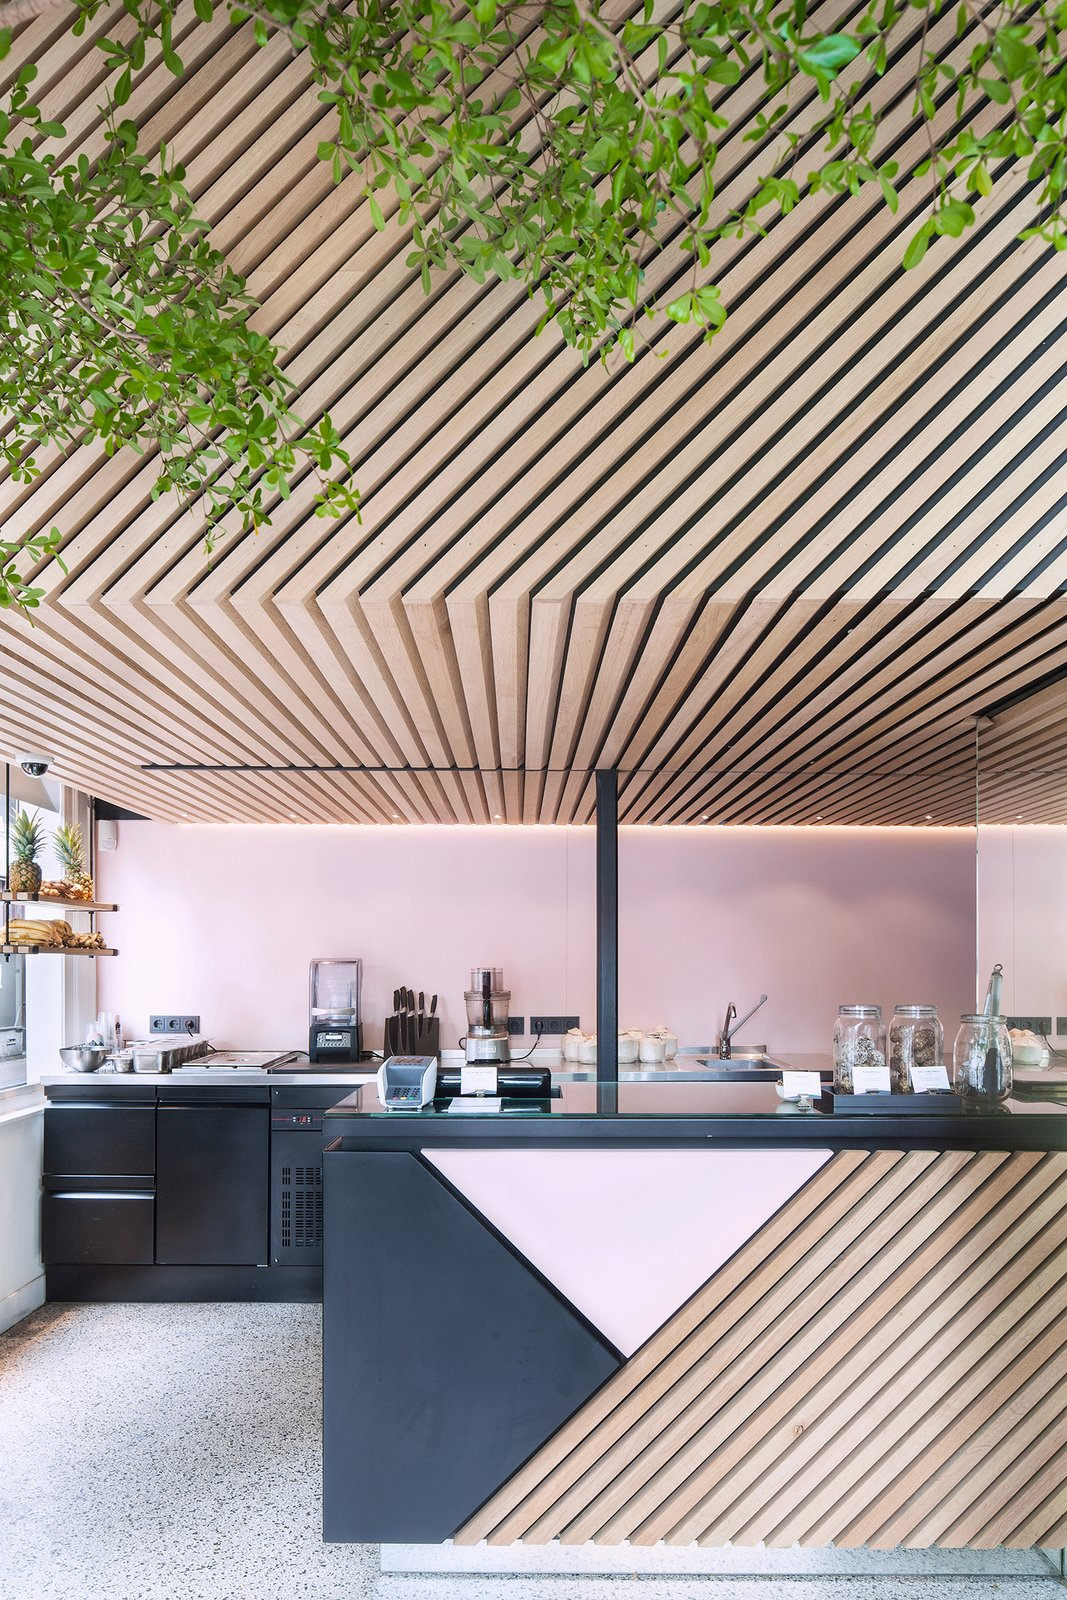 Designed by Standard Studio, the graphic store uses a palette of black and pink powder-coated metal and diagonally aligned wood slats. Photo by Wouter van der Sar.  Interiors by Chase Daniel from A Tree Grows in Amsterdam